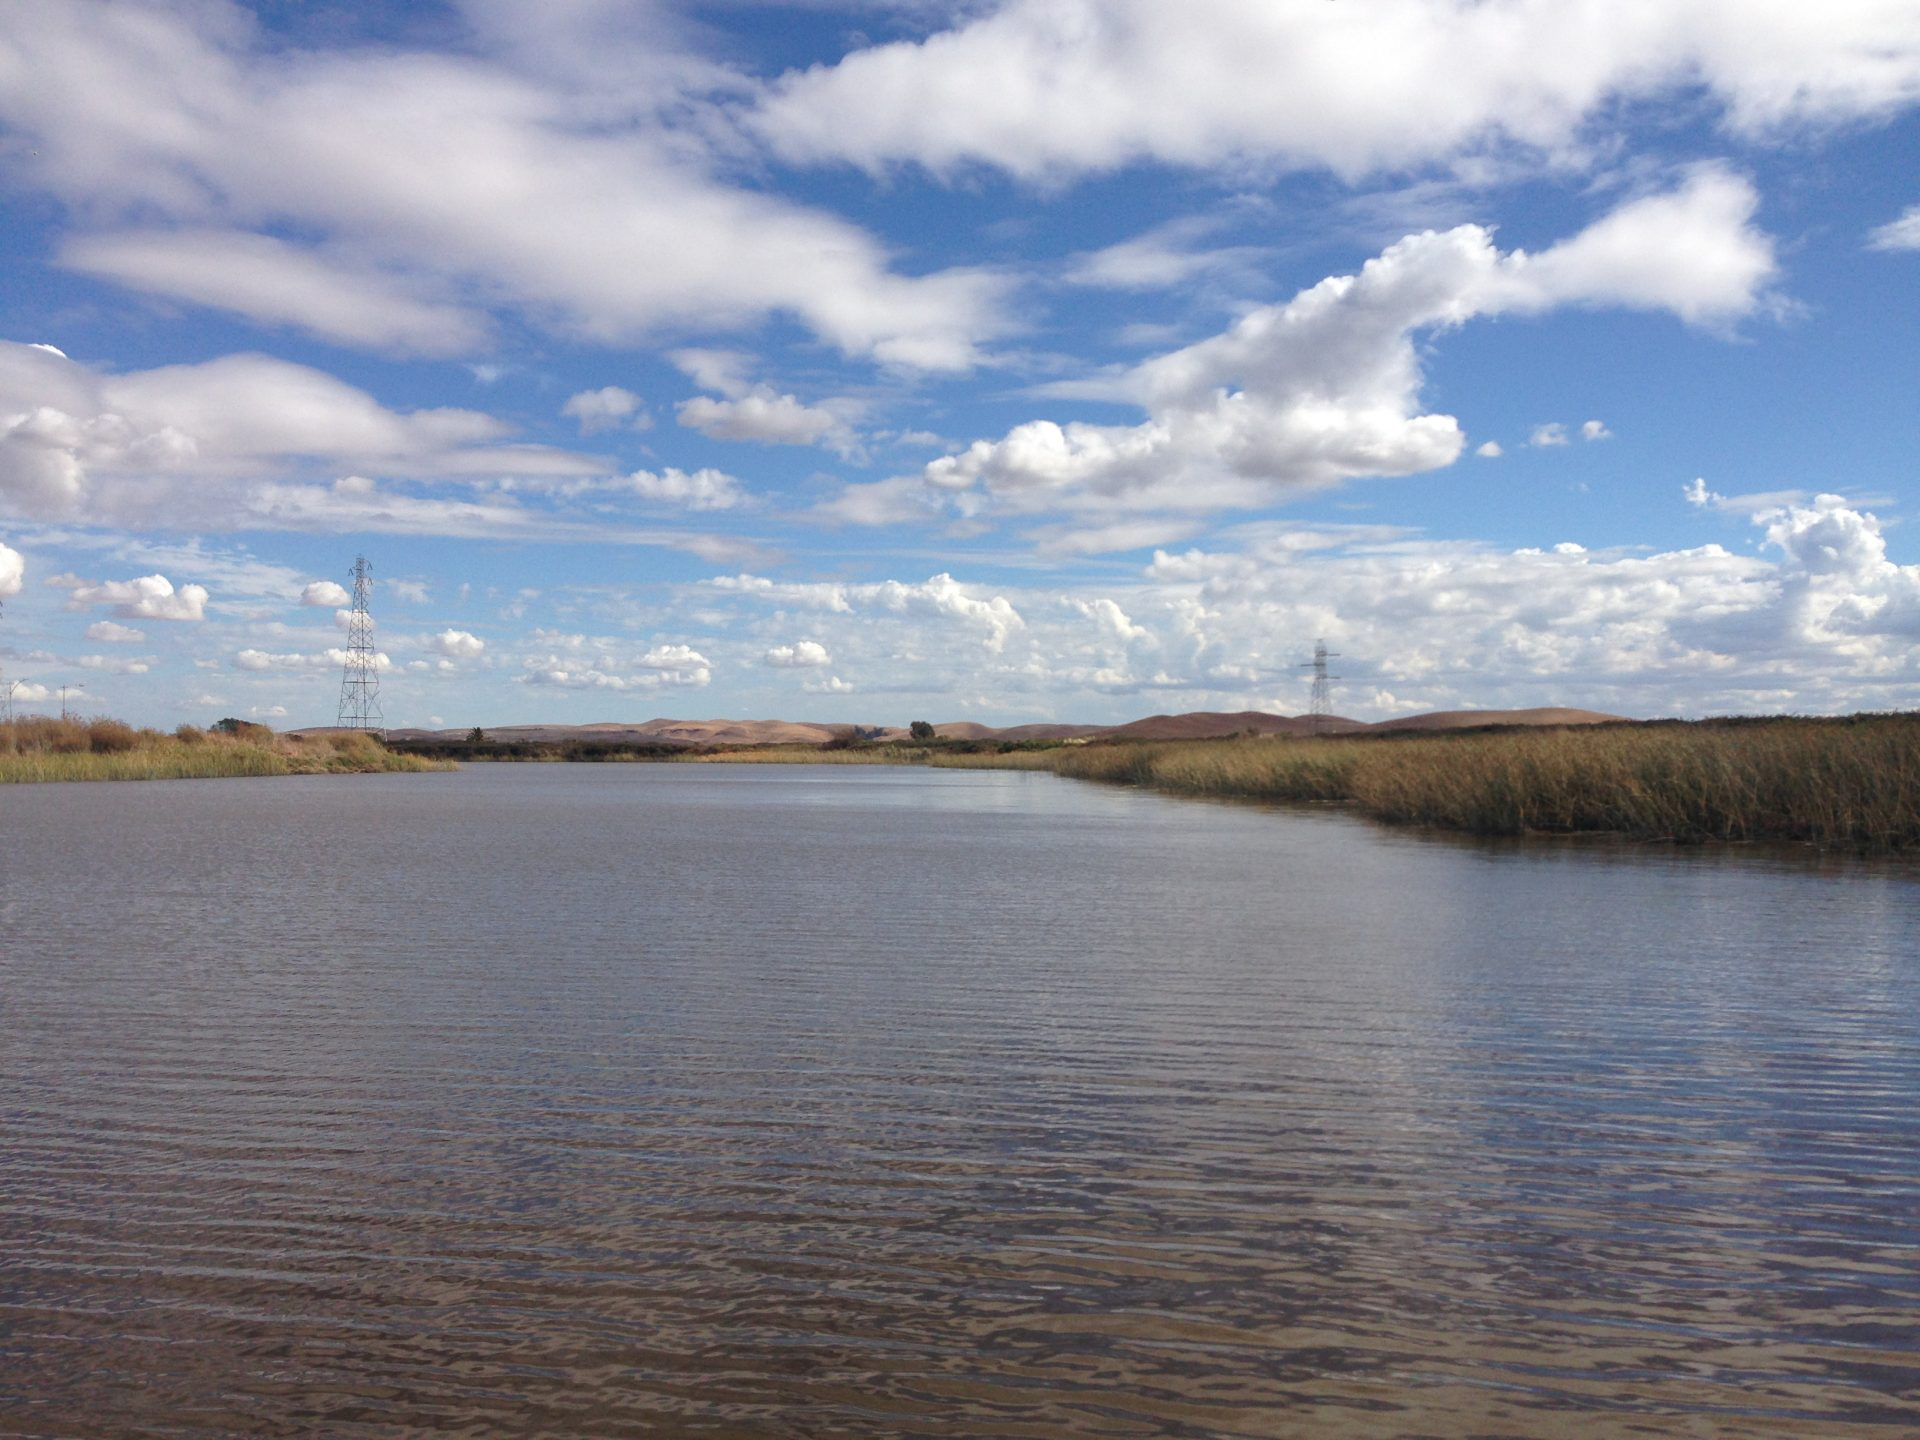 wide expanse of water, dramatic cloudy sky